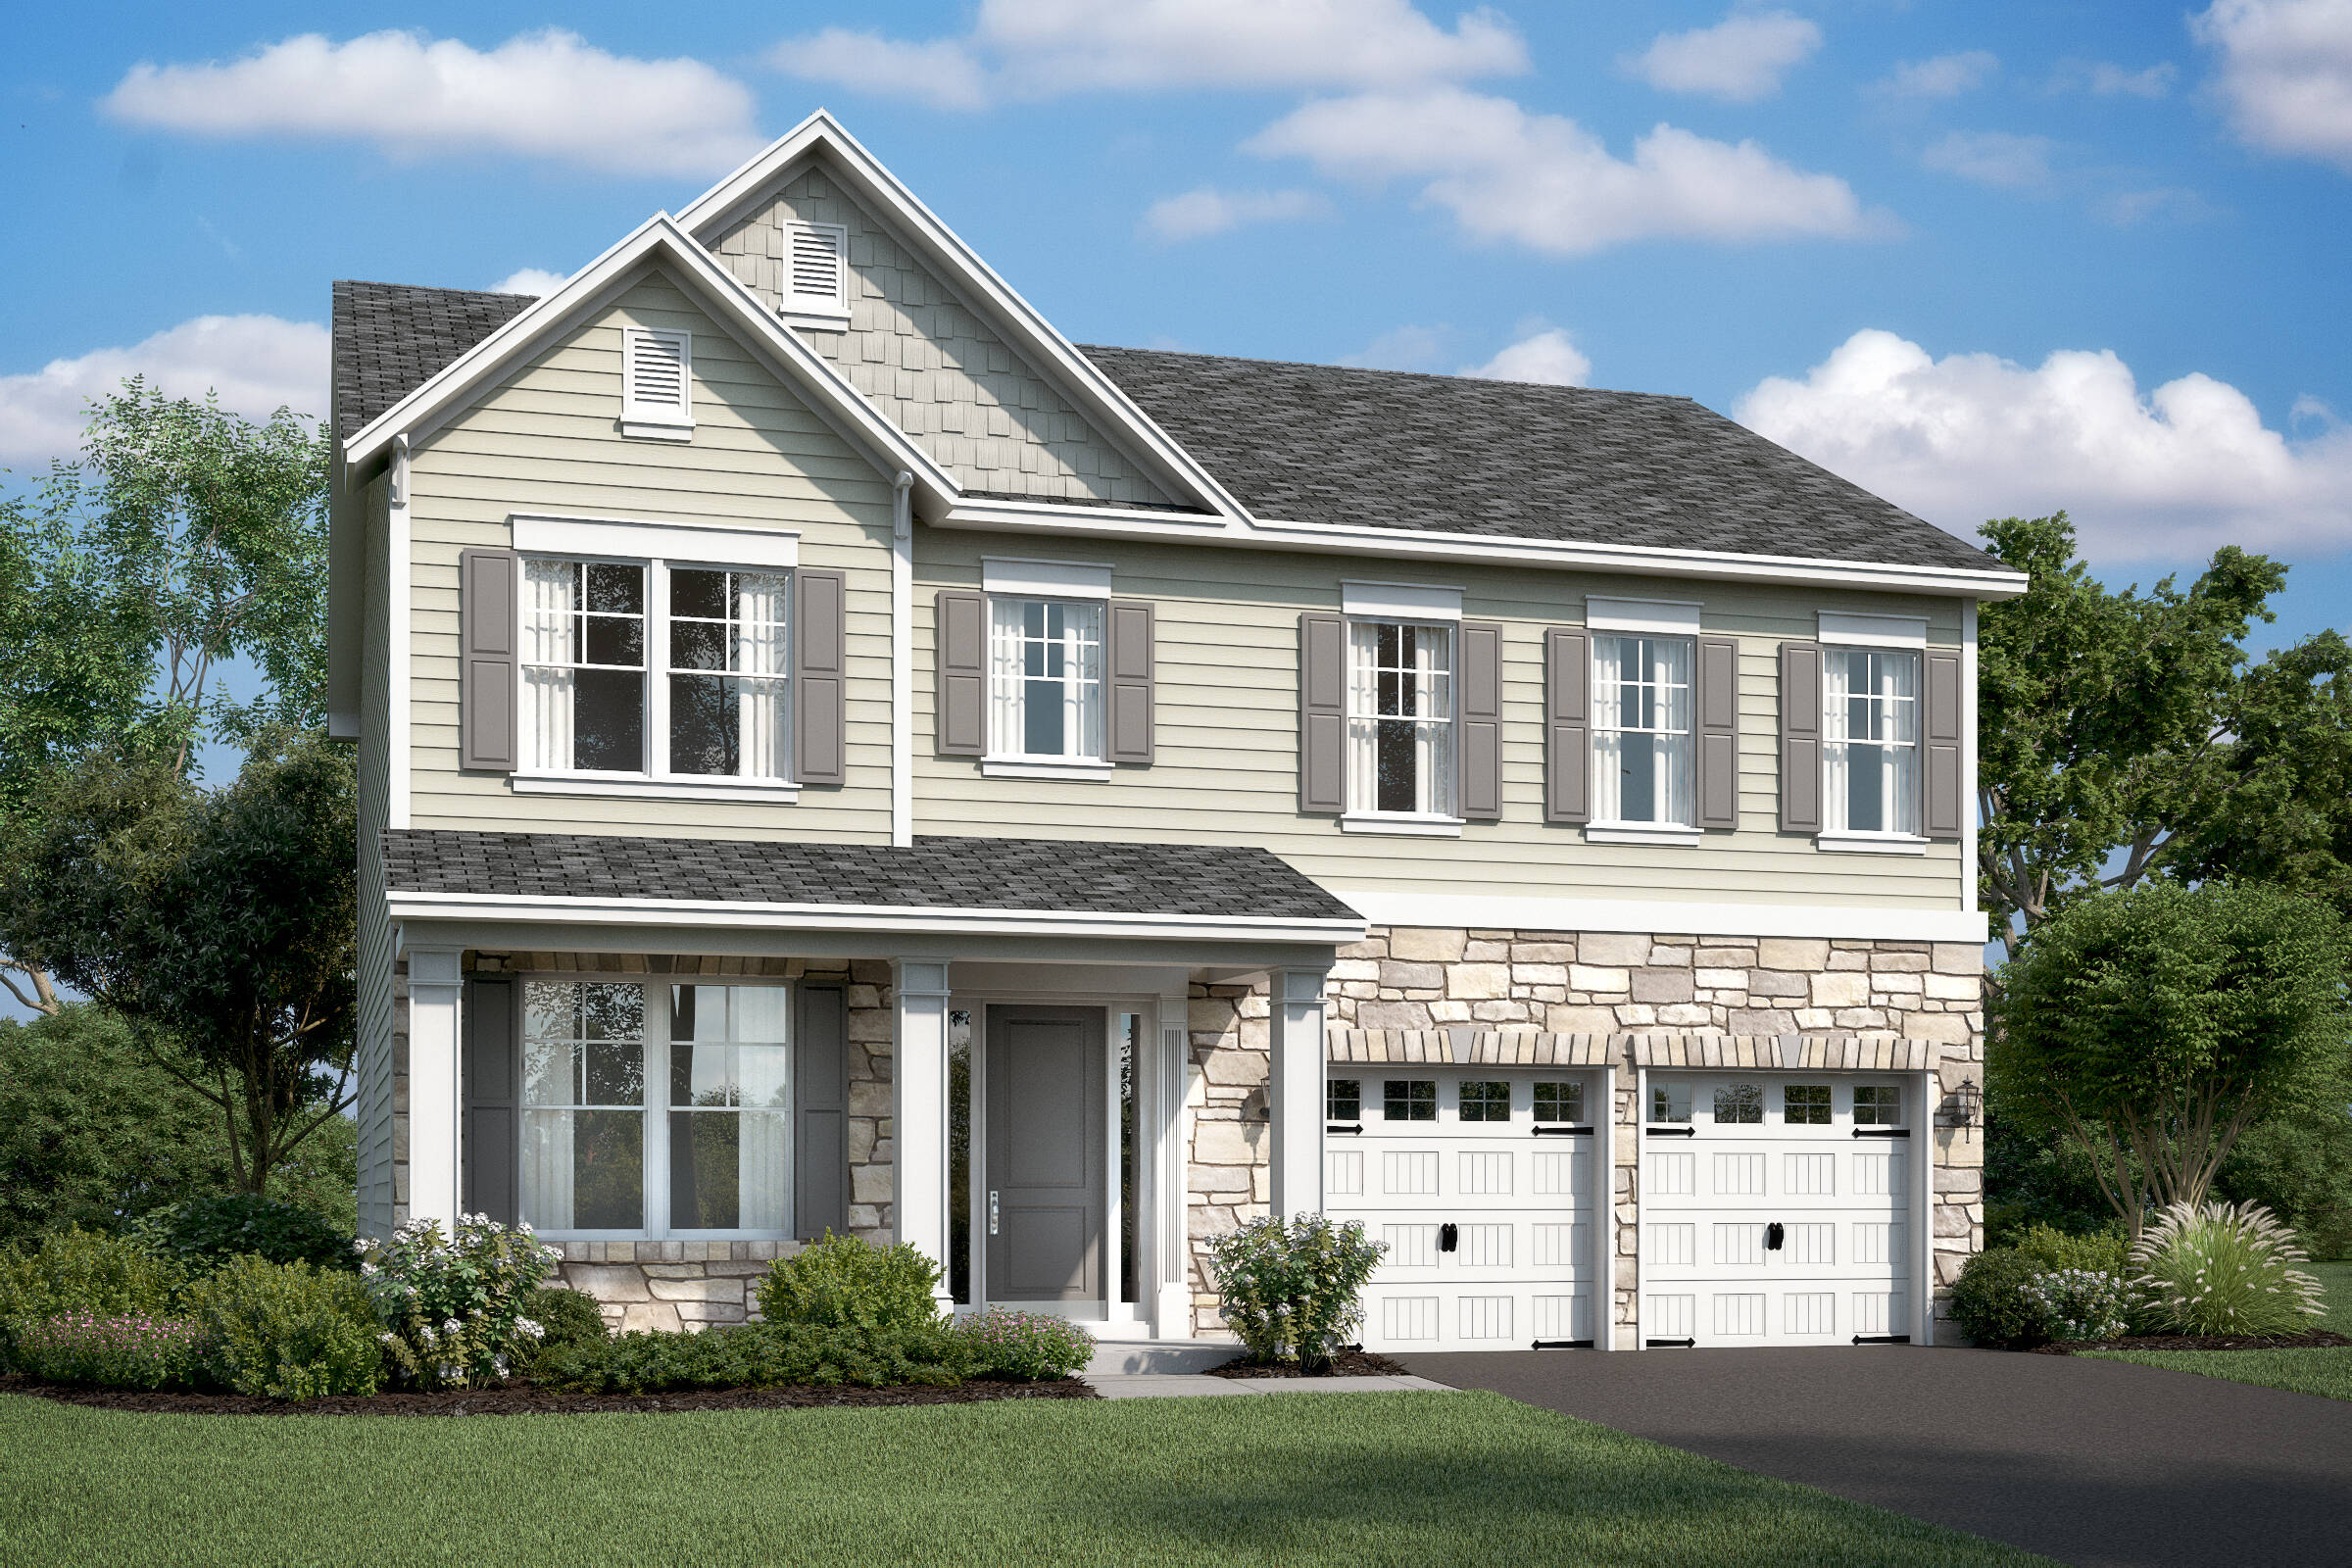 wedgewood-ft-new-homes-at-eden-terrace-in-maryland